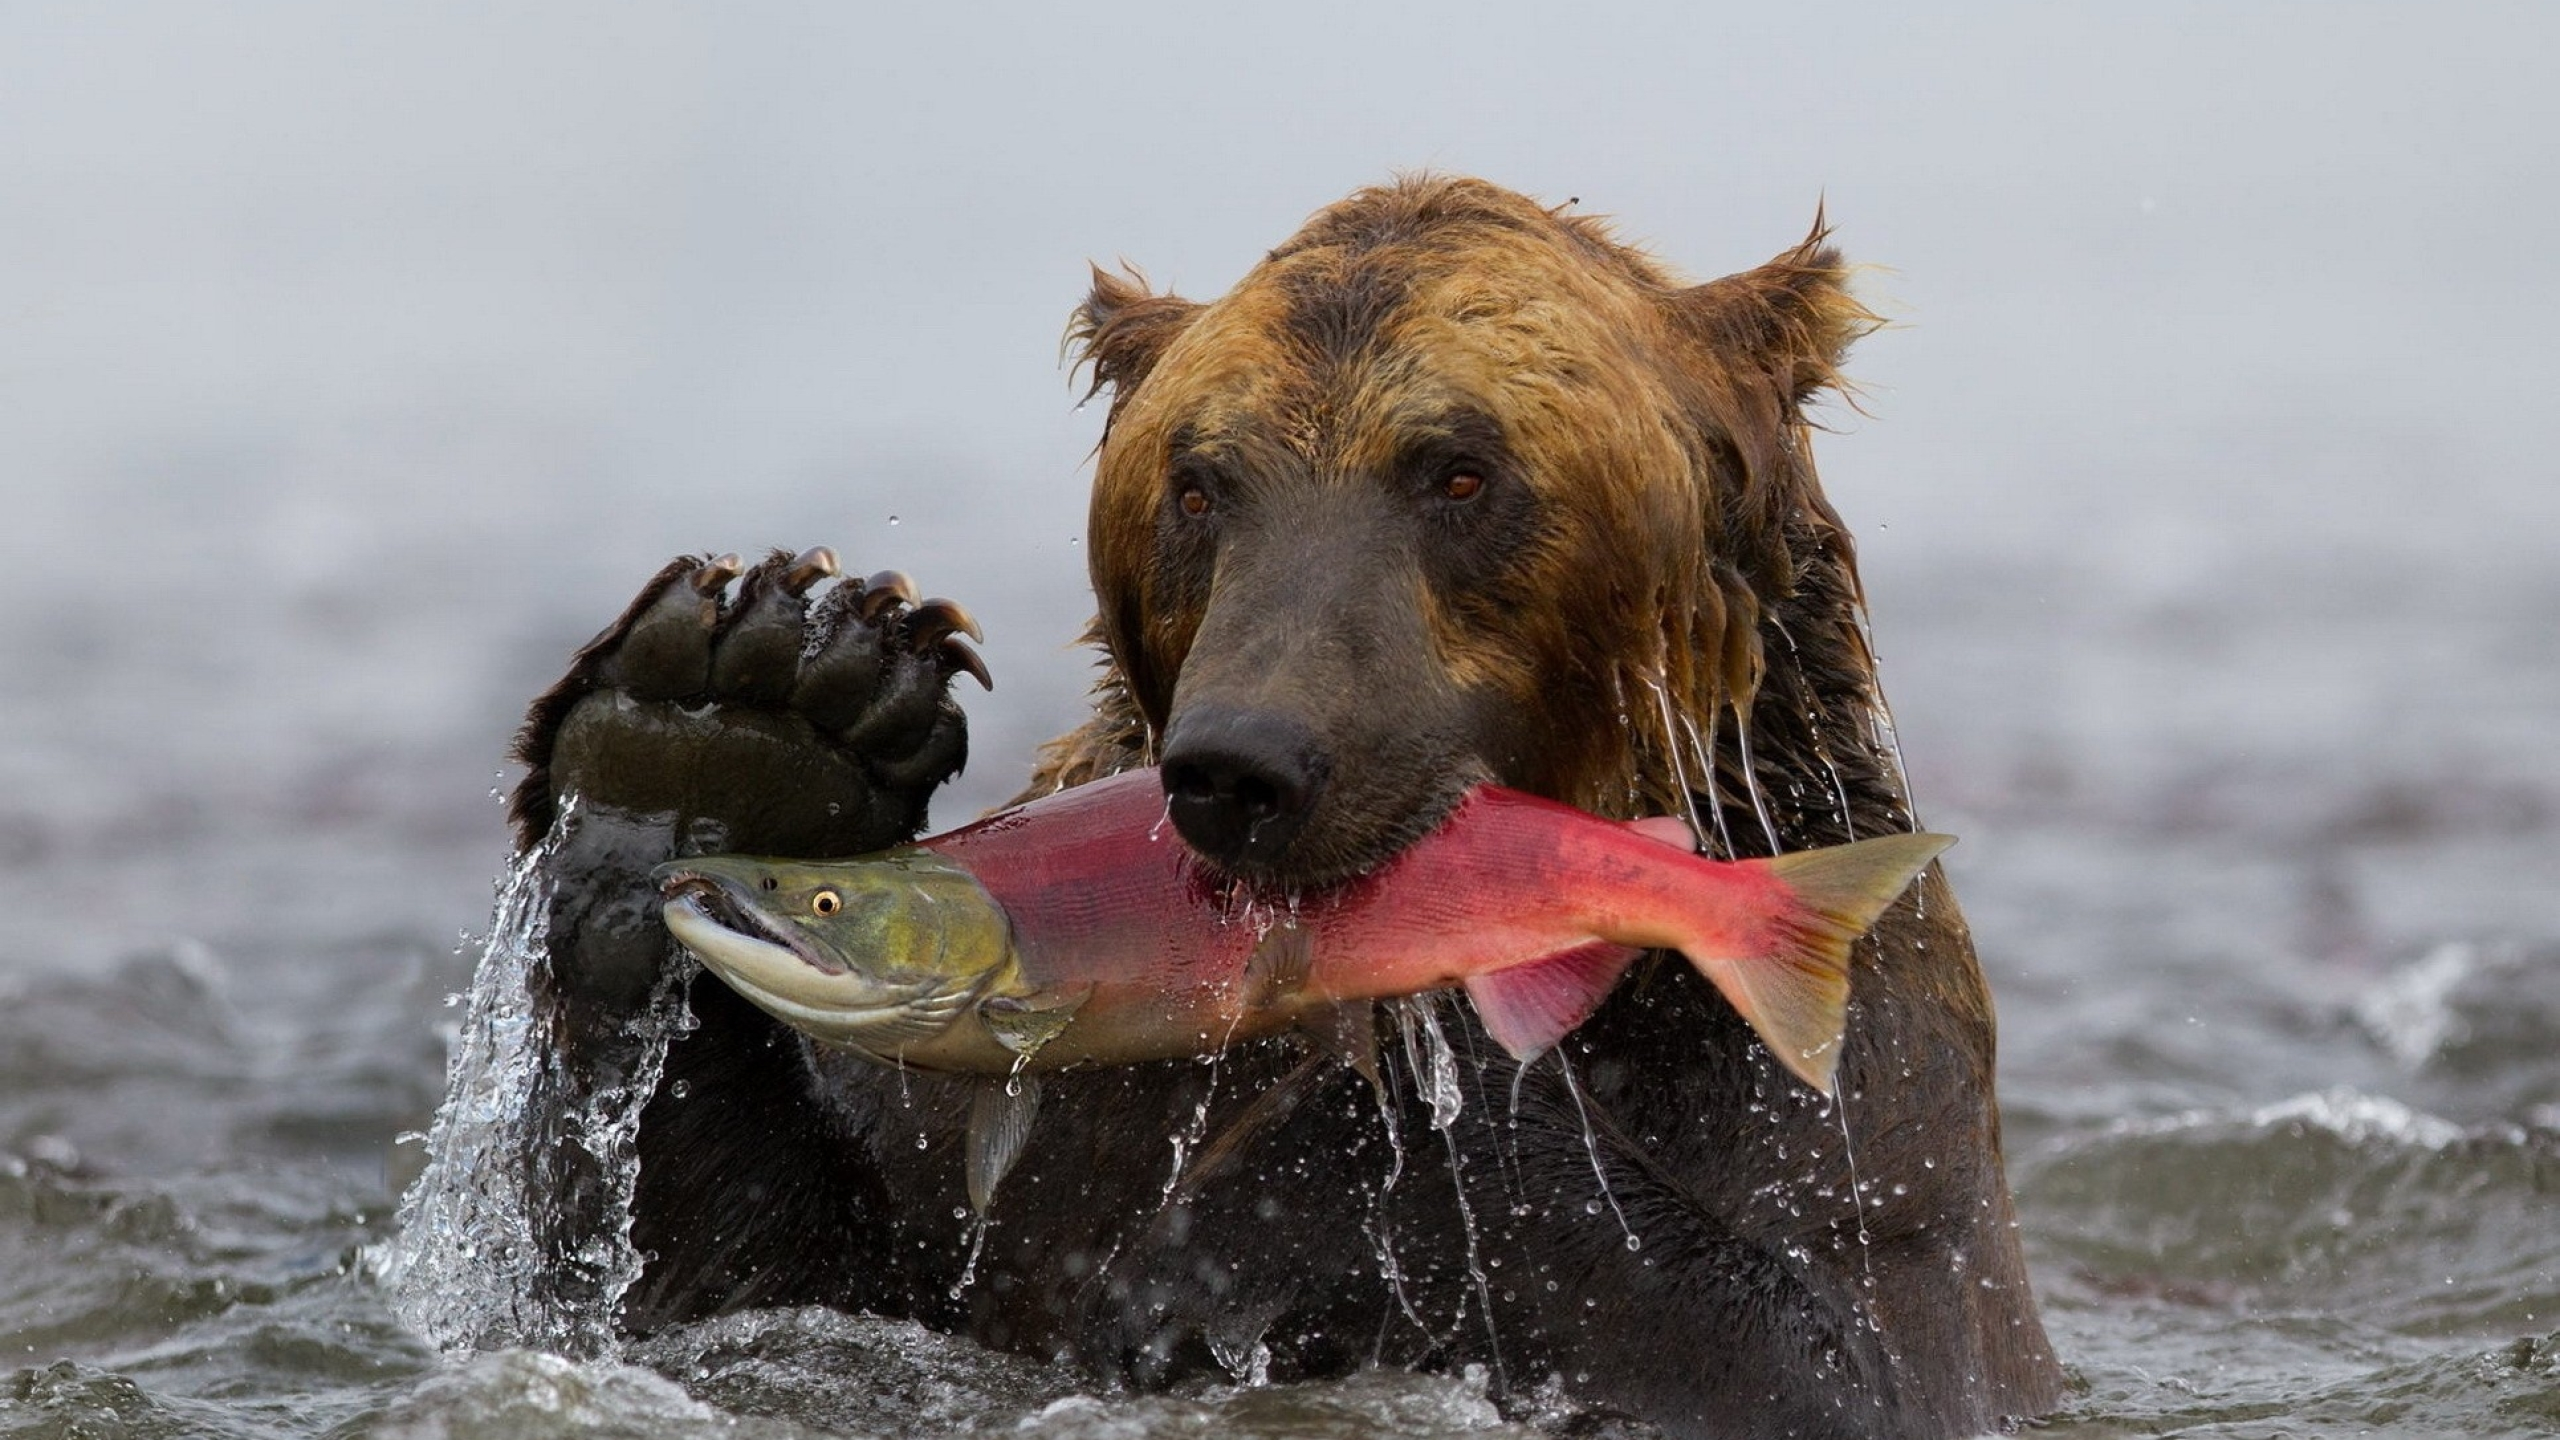 2560x1440 Bear Fish Fishing 1440p Resolution Wallpaper Hd Animals 4k Wallpapers Images Photos And Background